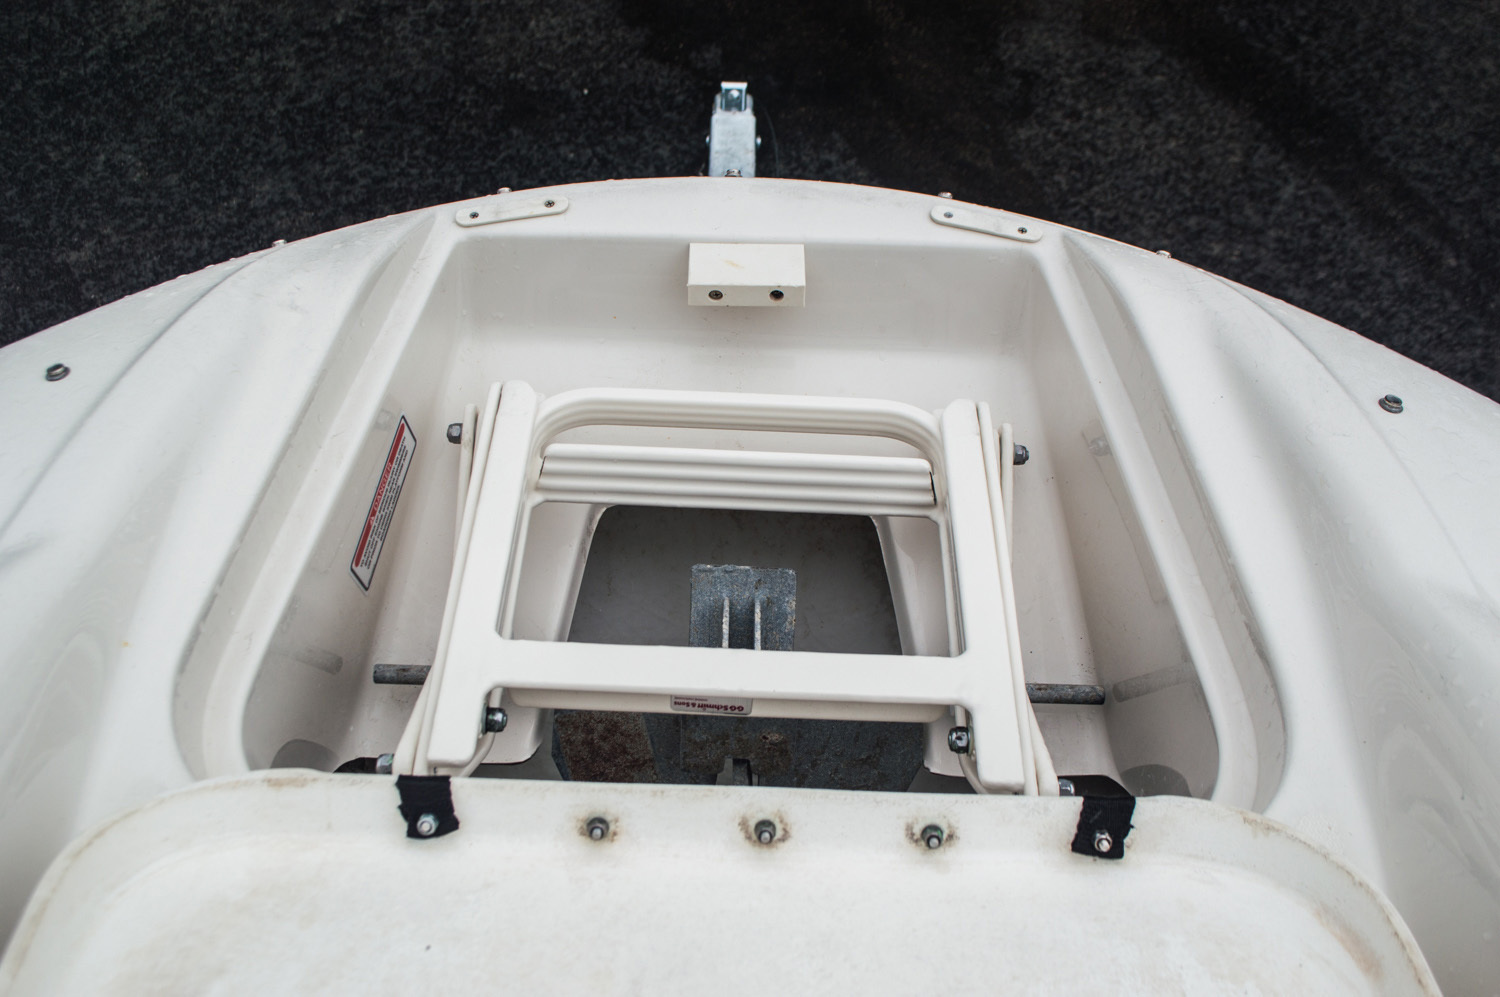 Thumbnail 17 for Used 2005 Sea Ray 240 Sundeck boat for sale in West Palm Beach, FL